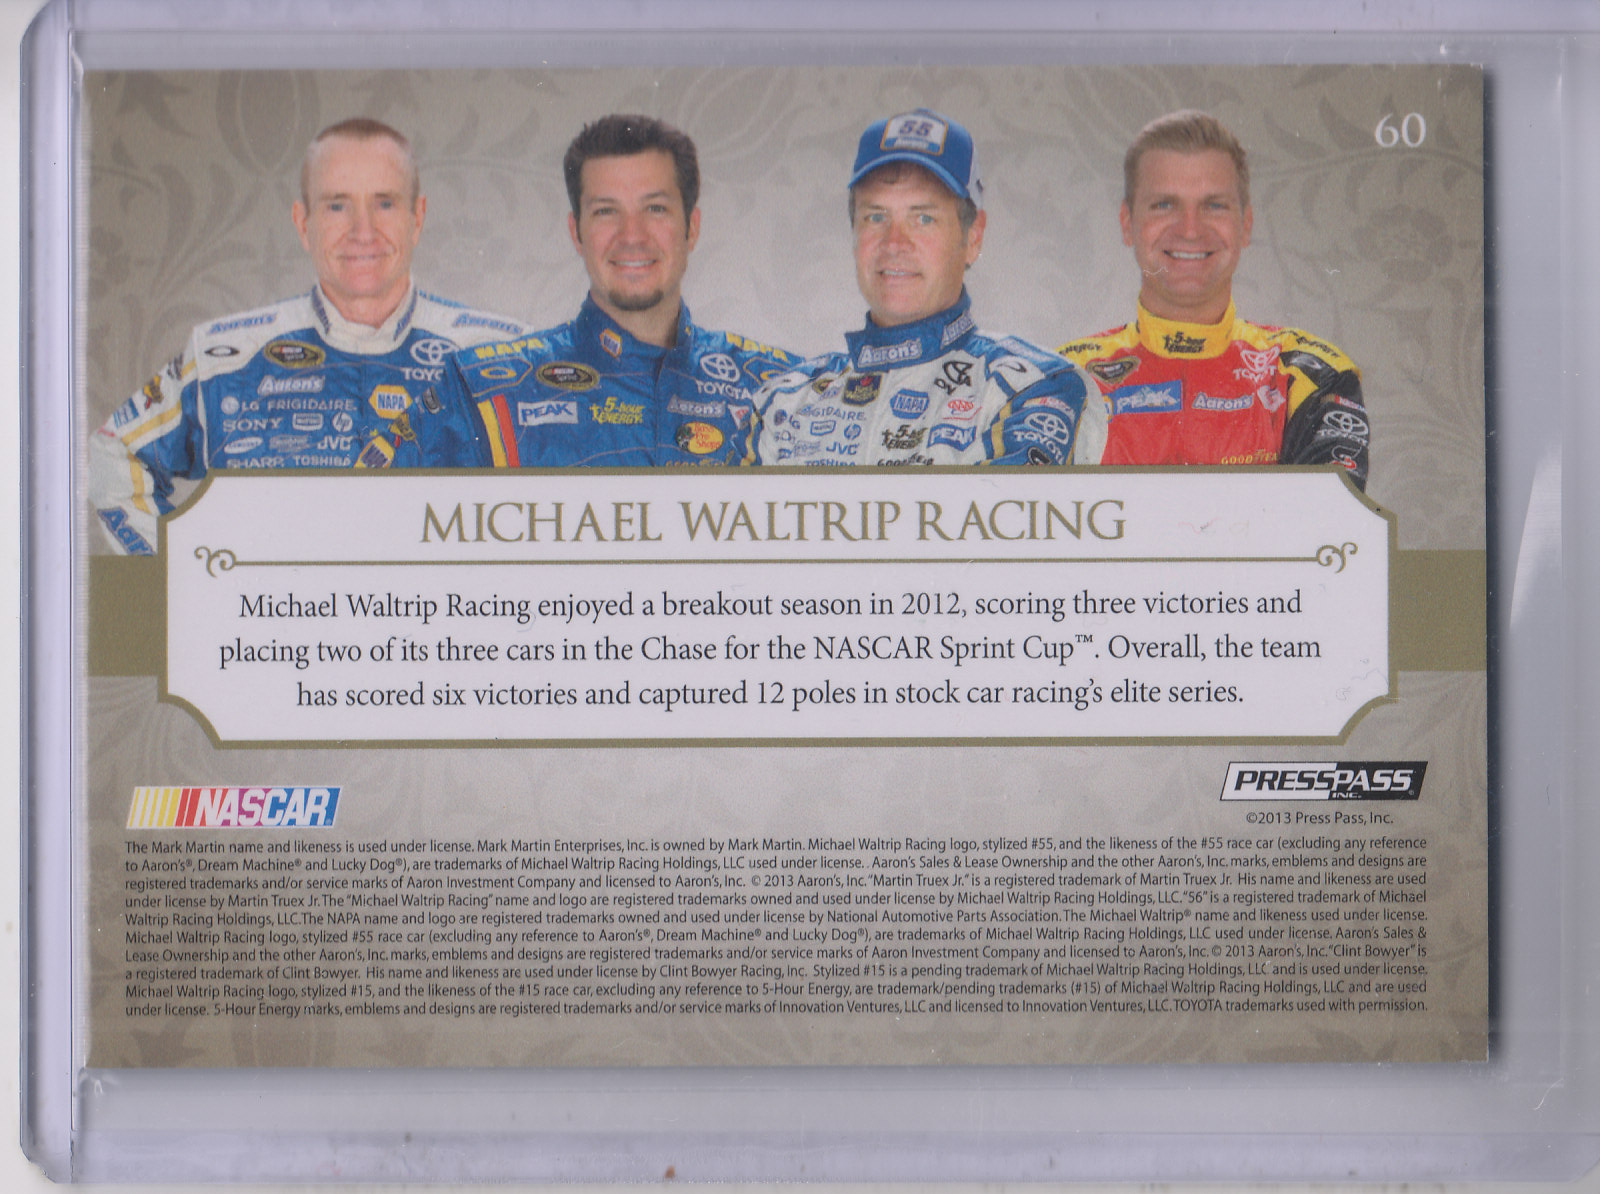 2013 Press Pass Showcase #60 Michael Waltrip Racing CC/Mark Martin/Martin Truex/Michael Waltrip/Clint Bowyer